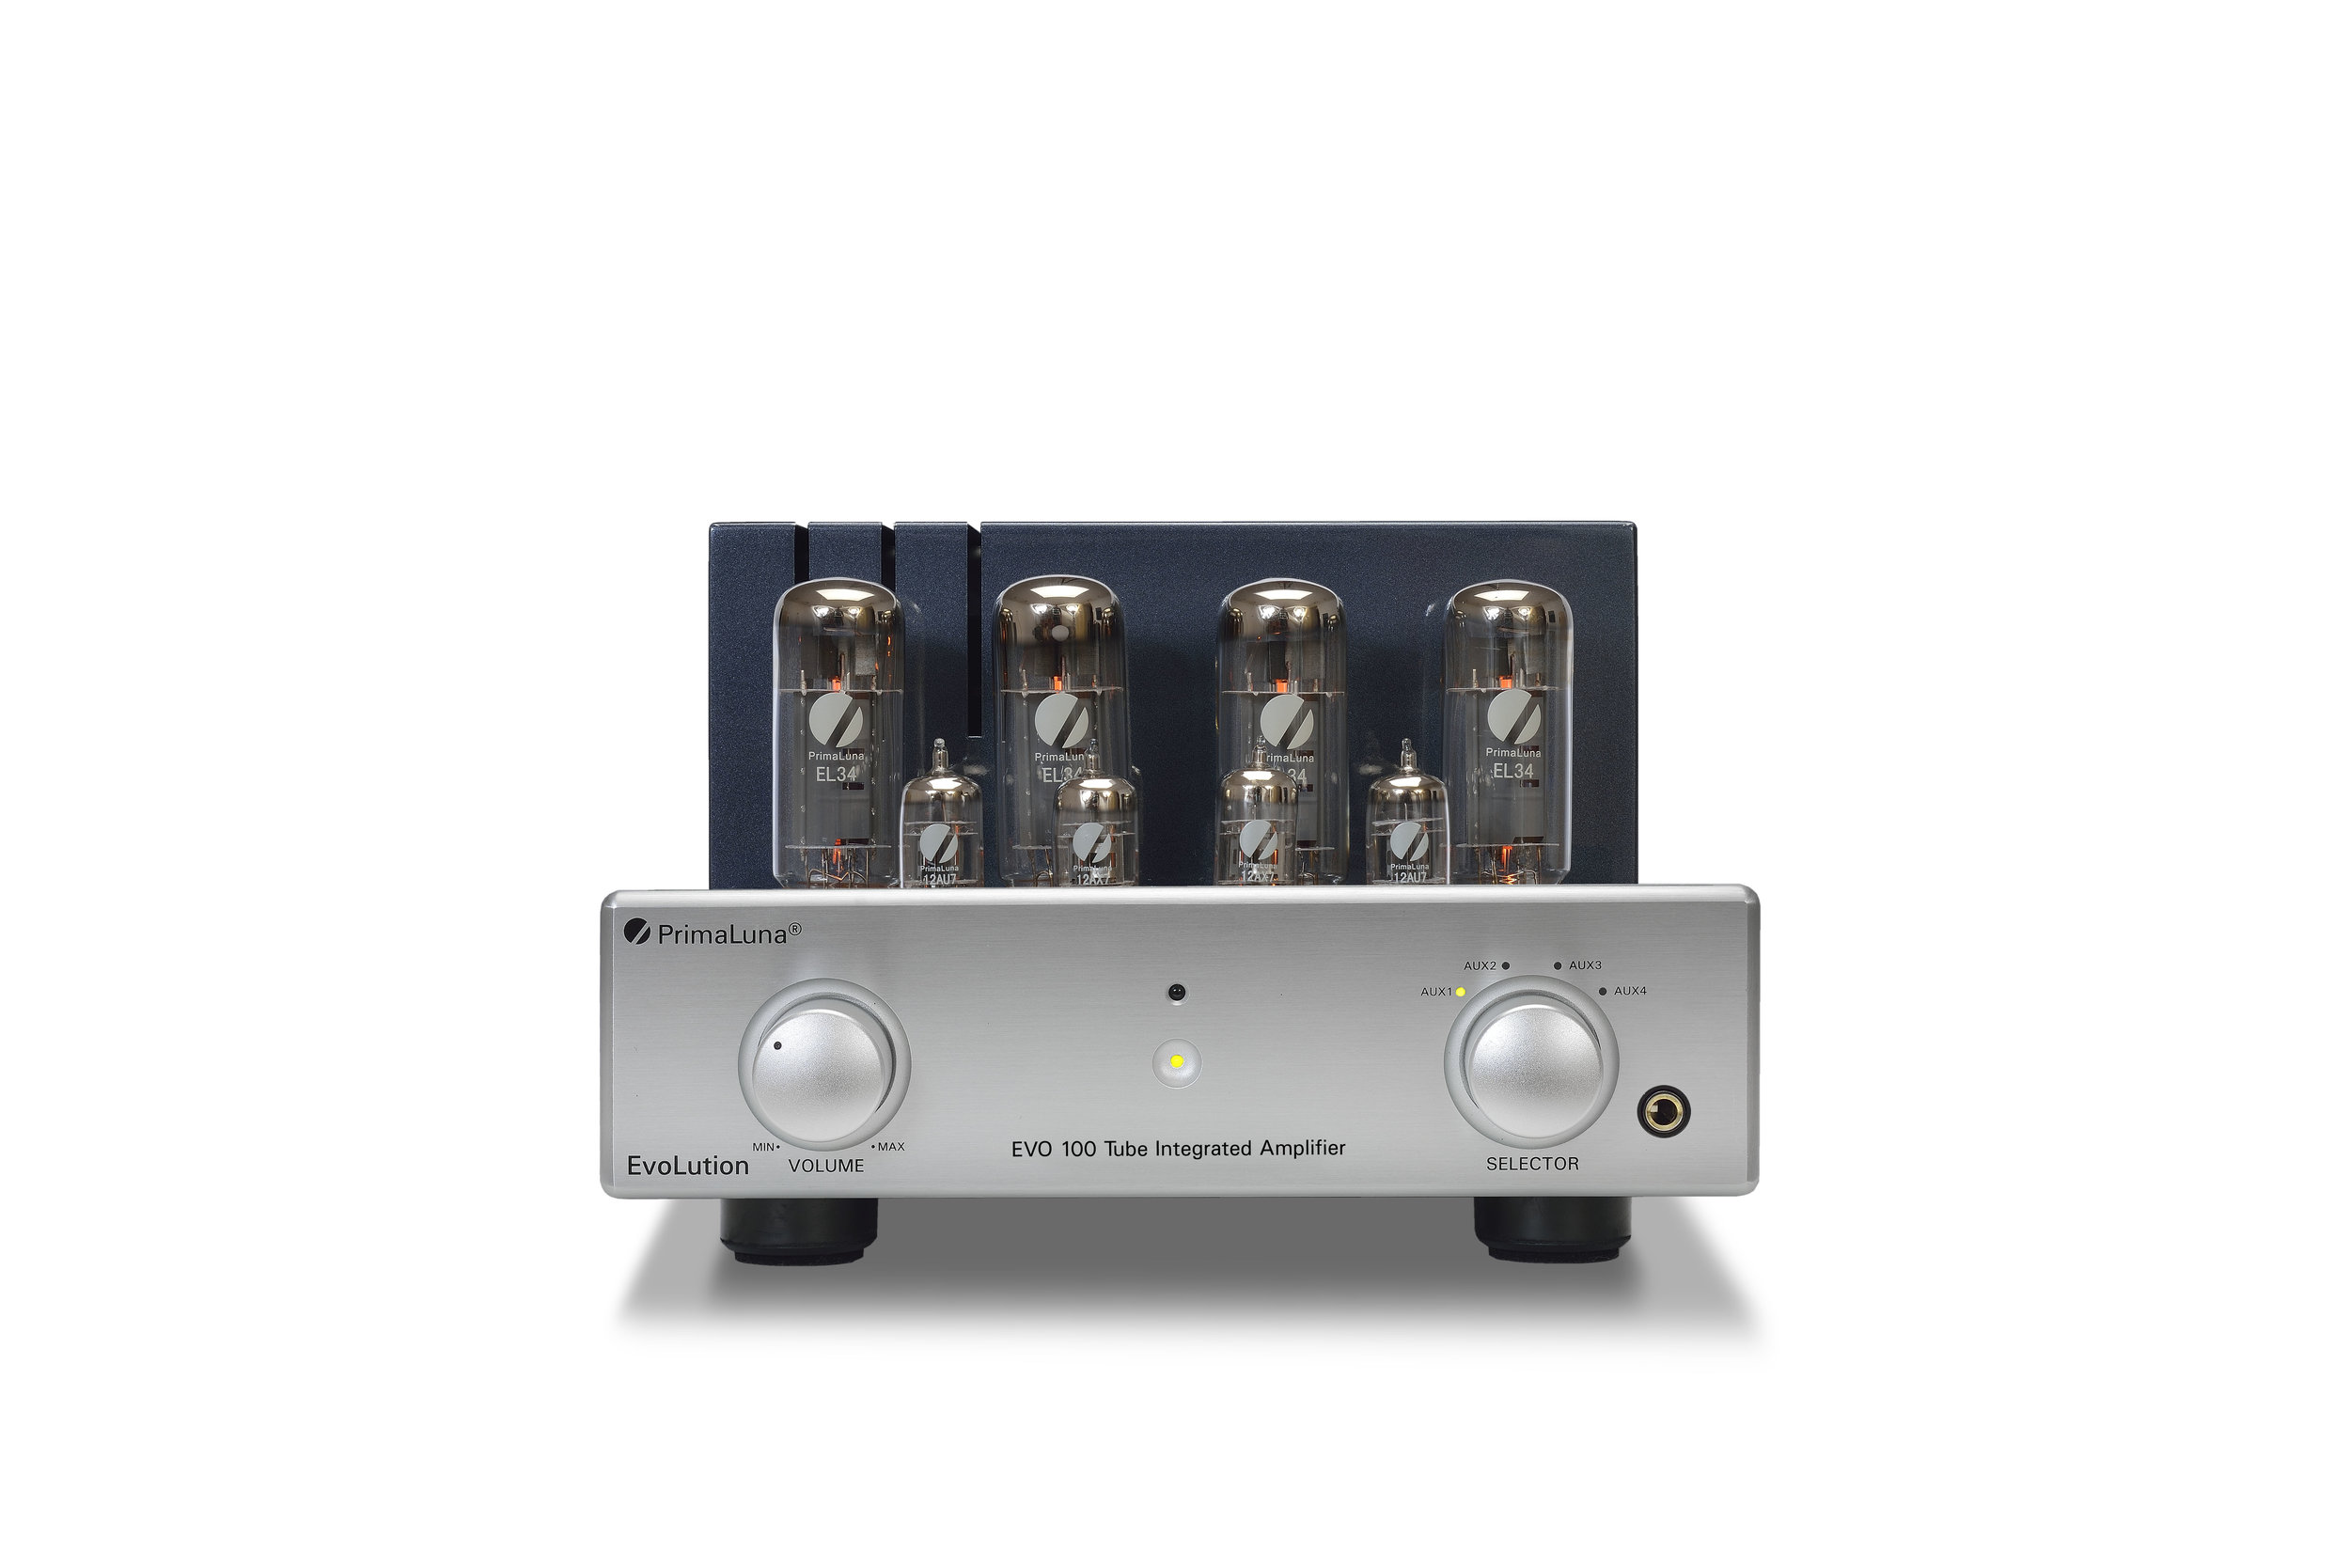 178b - PrimaLuna EVO 100 Tube Integrated Amplifier - silver - front low - white background.jpg